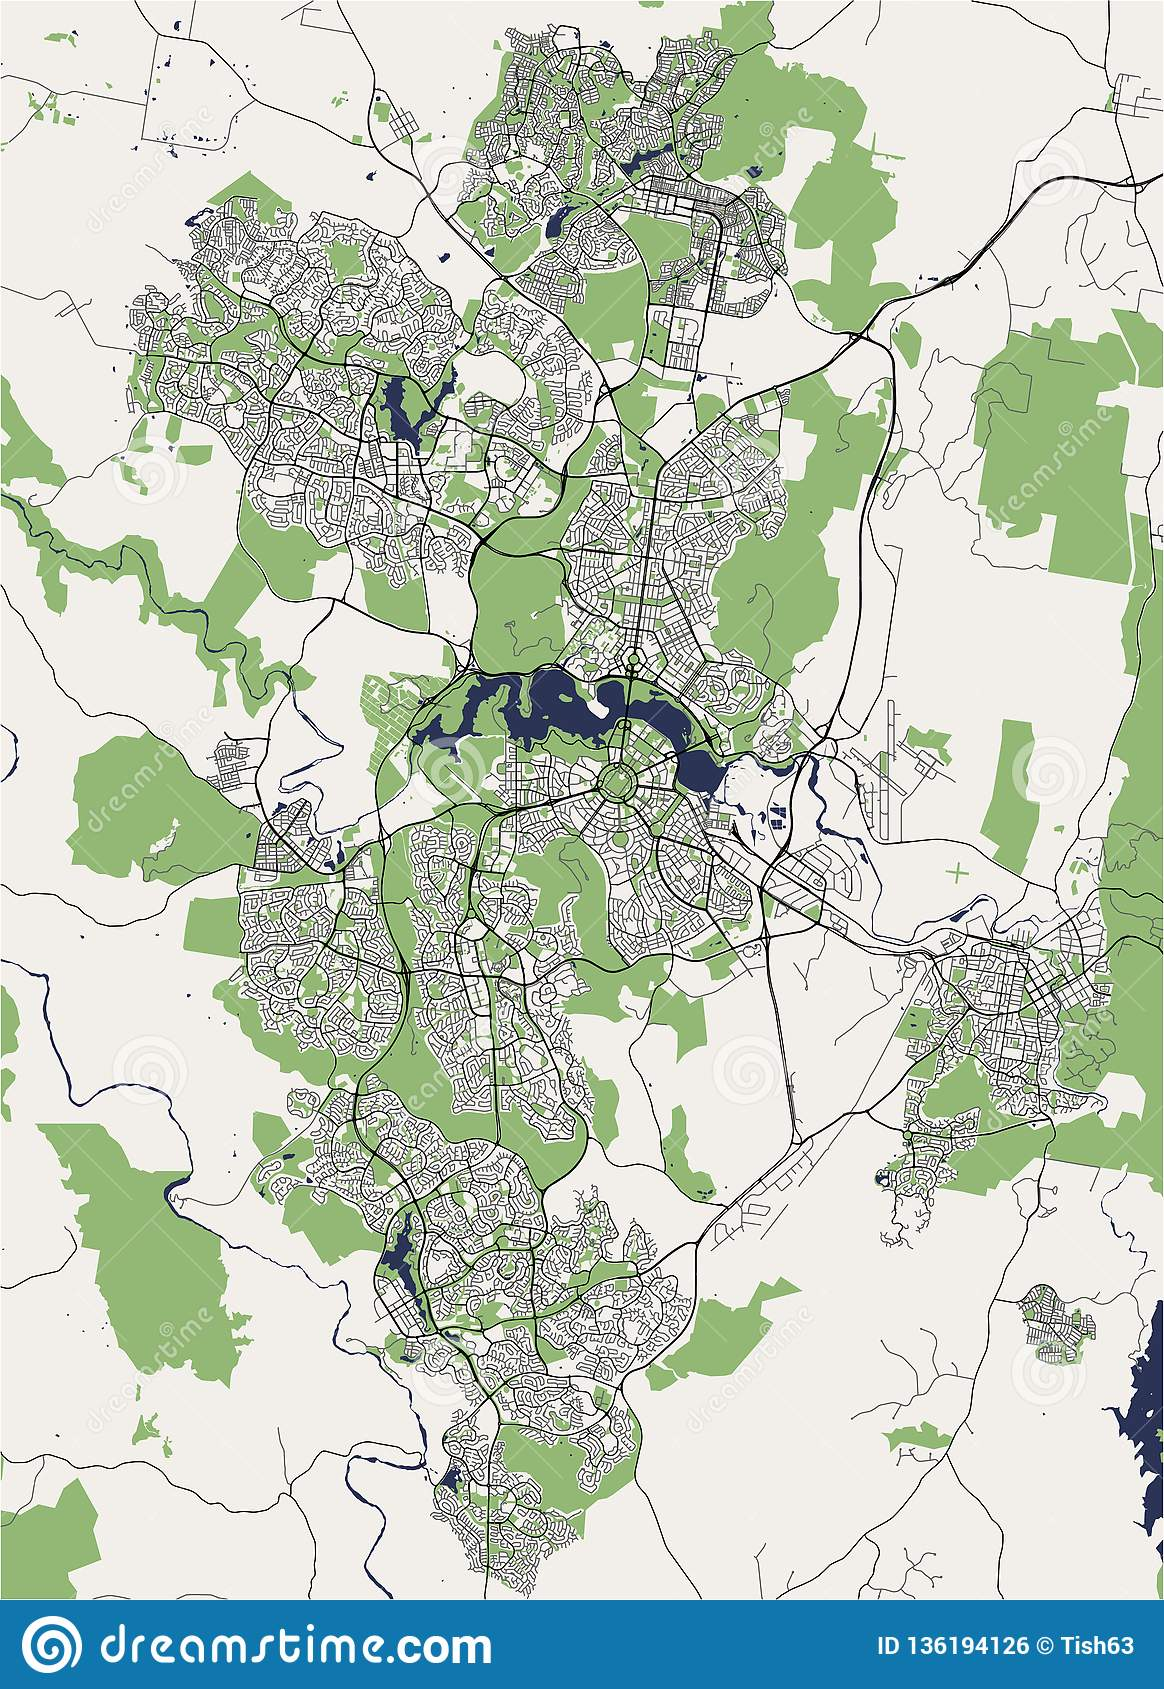 Map Of Canberra Map Of The City Of Canberra Australian Capital Territory